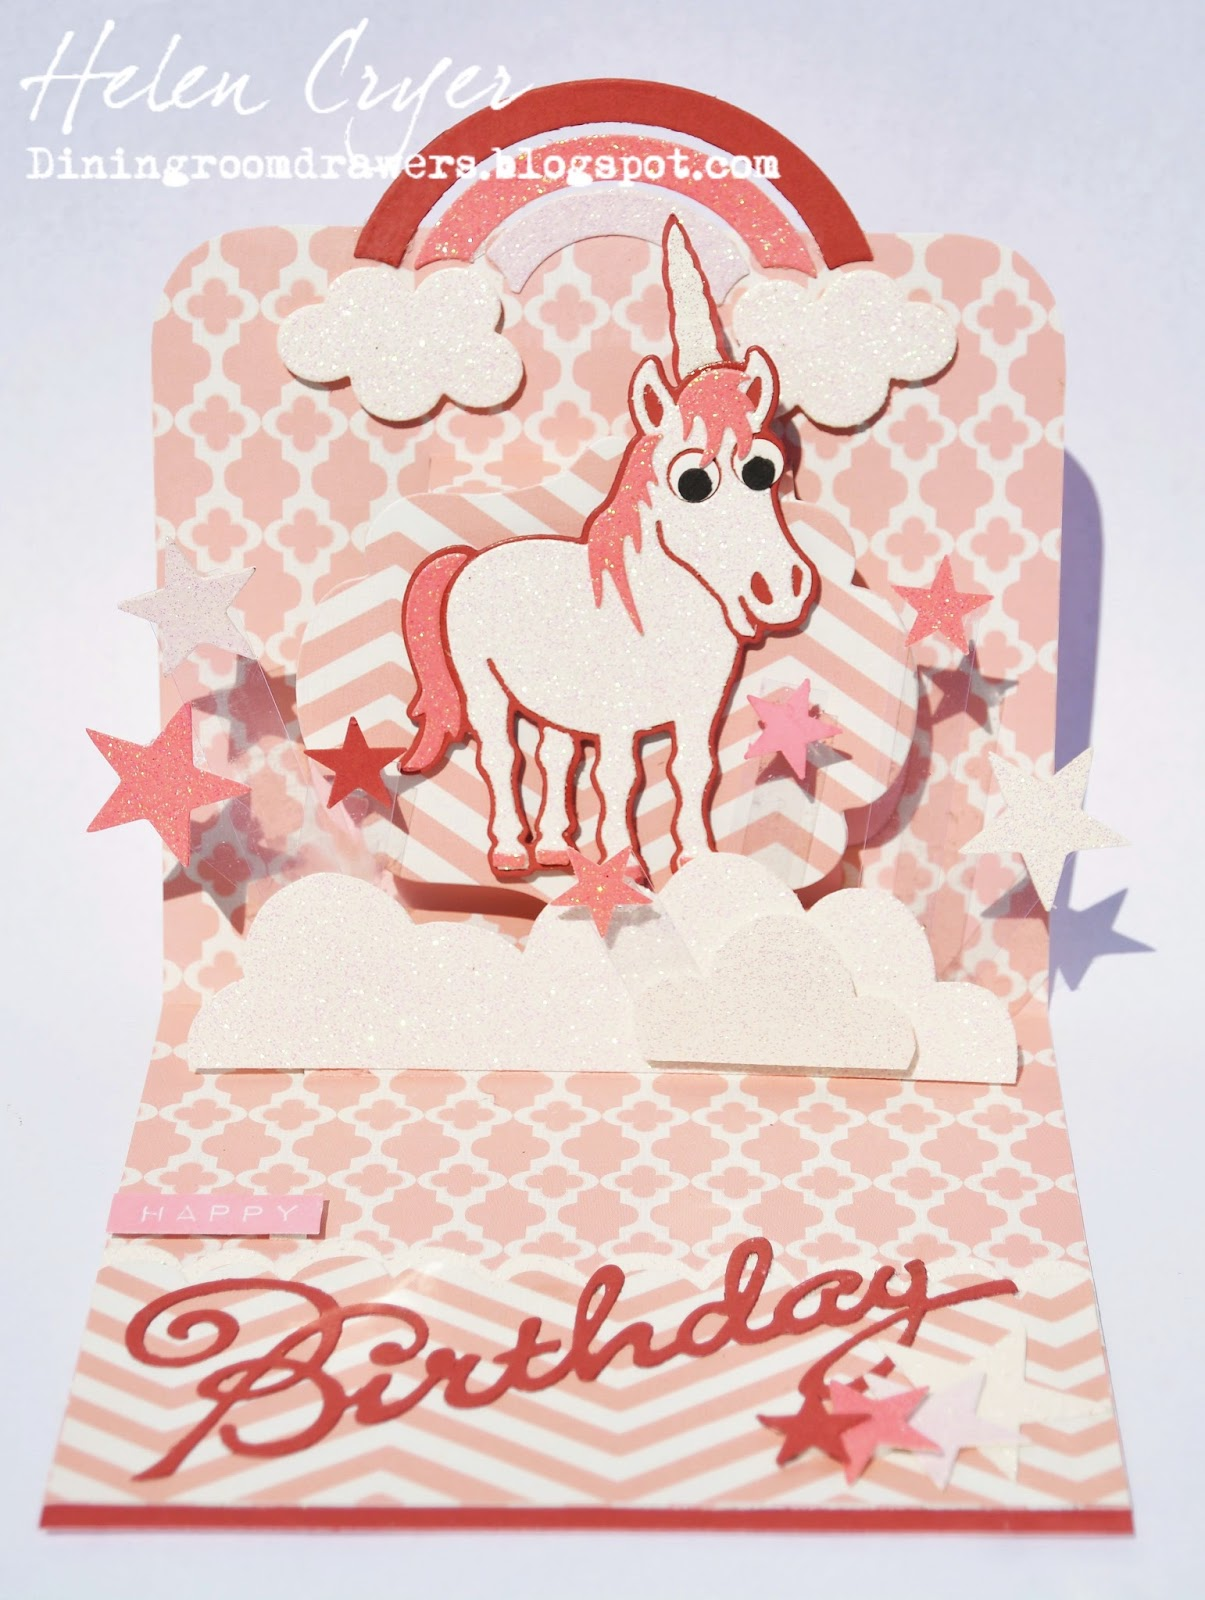 Inspirational unicorn birthday card pics laughterisaleap the dining room drawers pop it ups cocoa the horse unicorn bookmarktalkfo Gallery